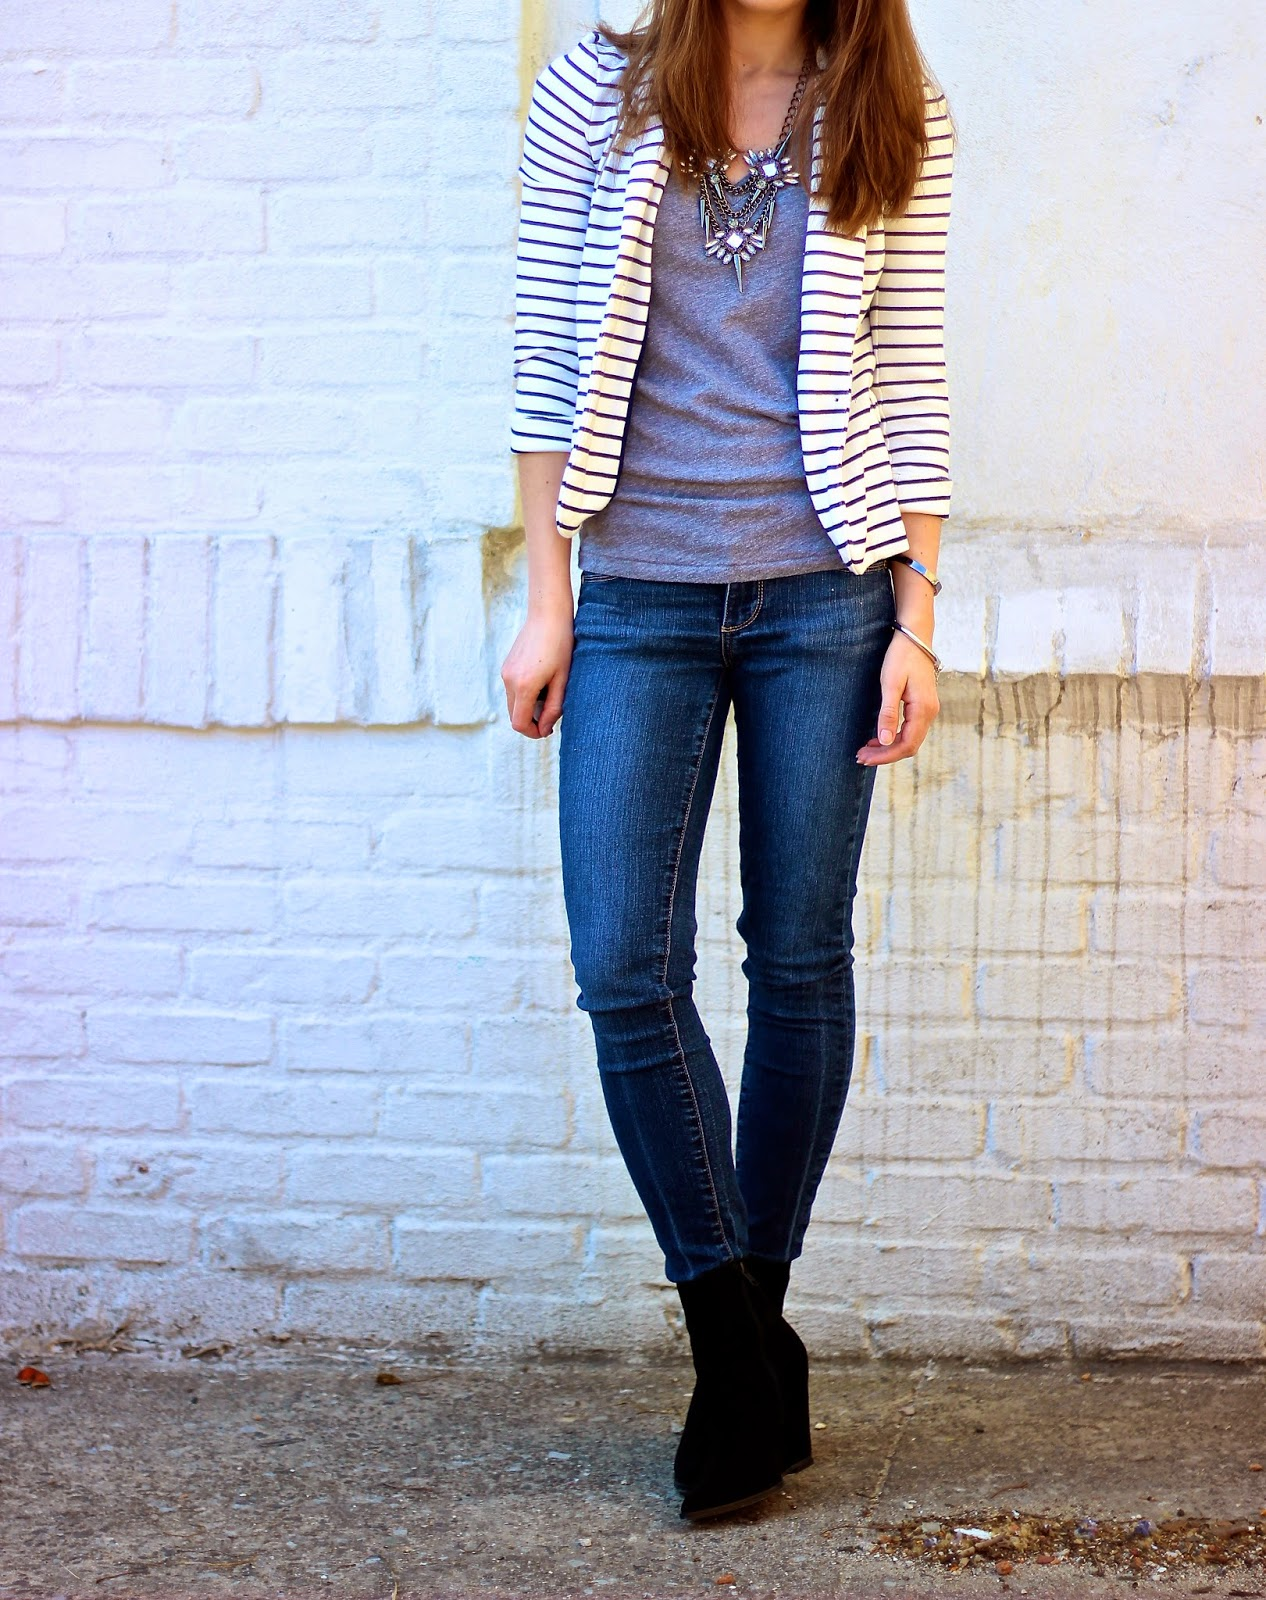 Statement & Stripes